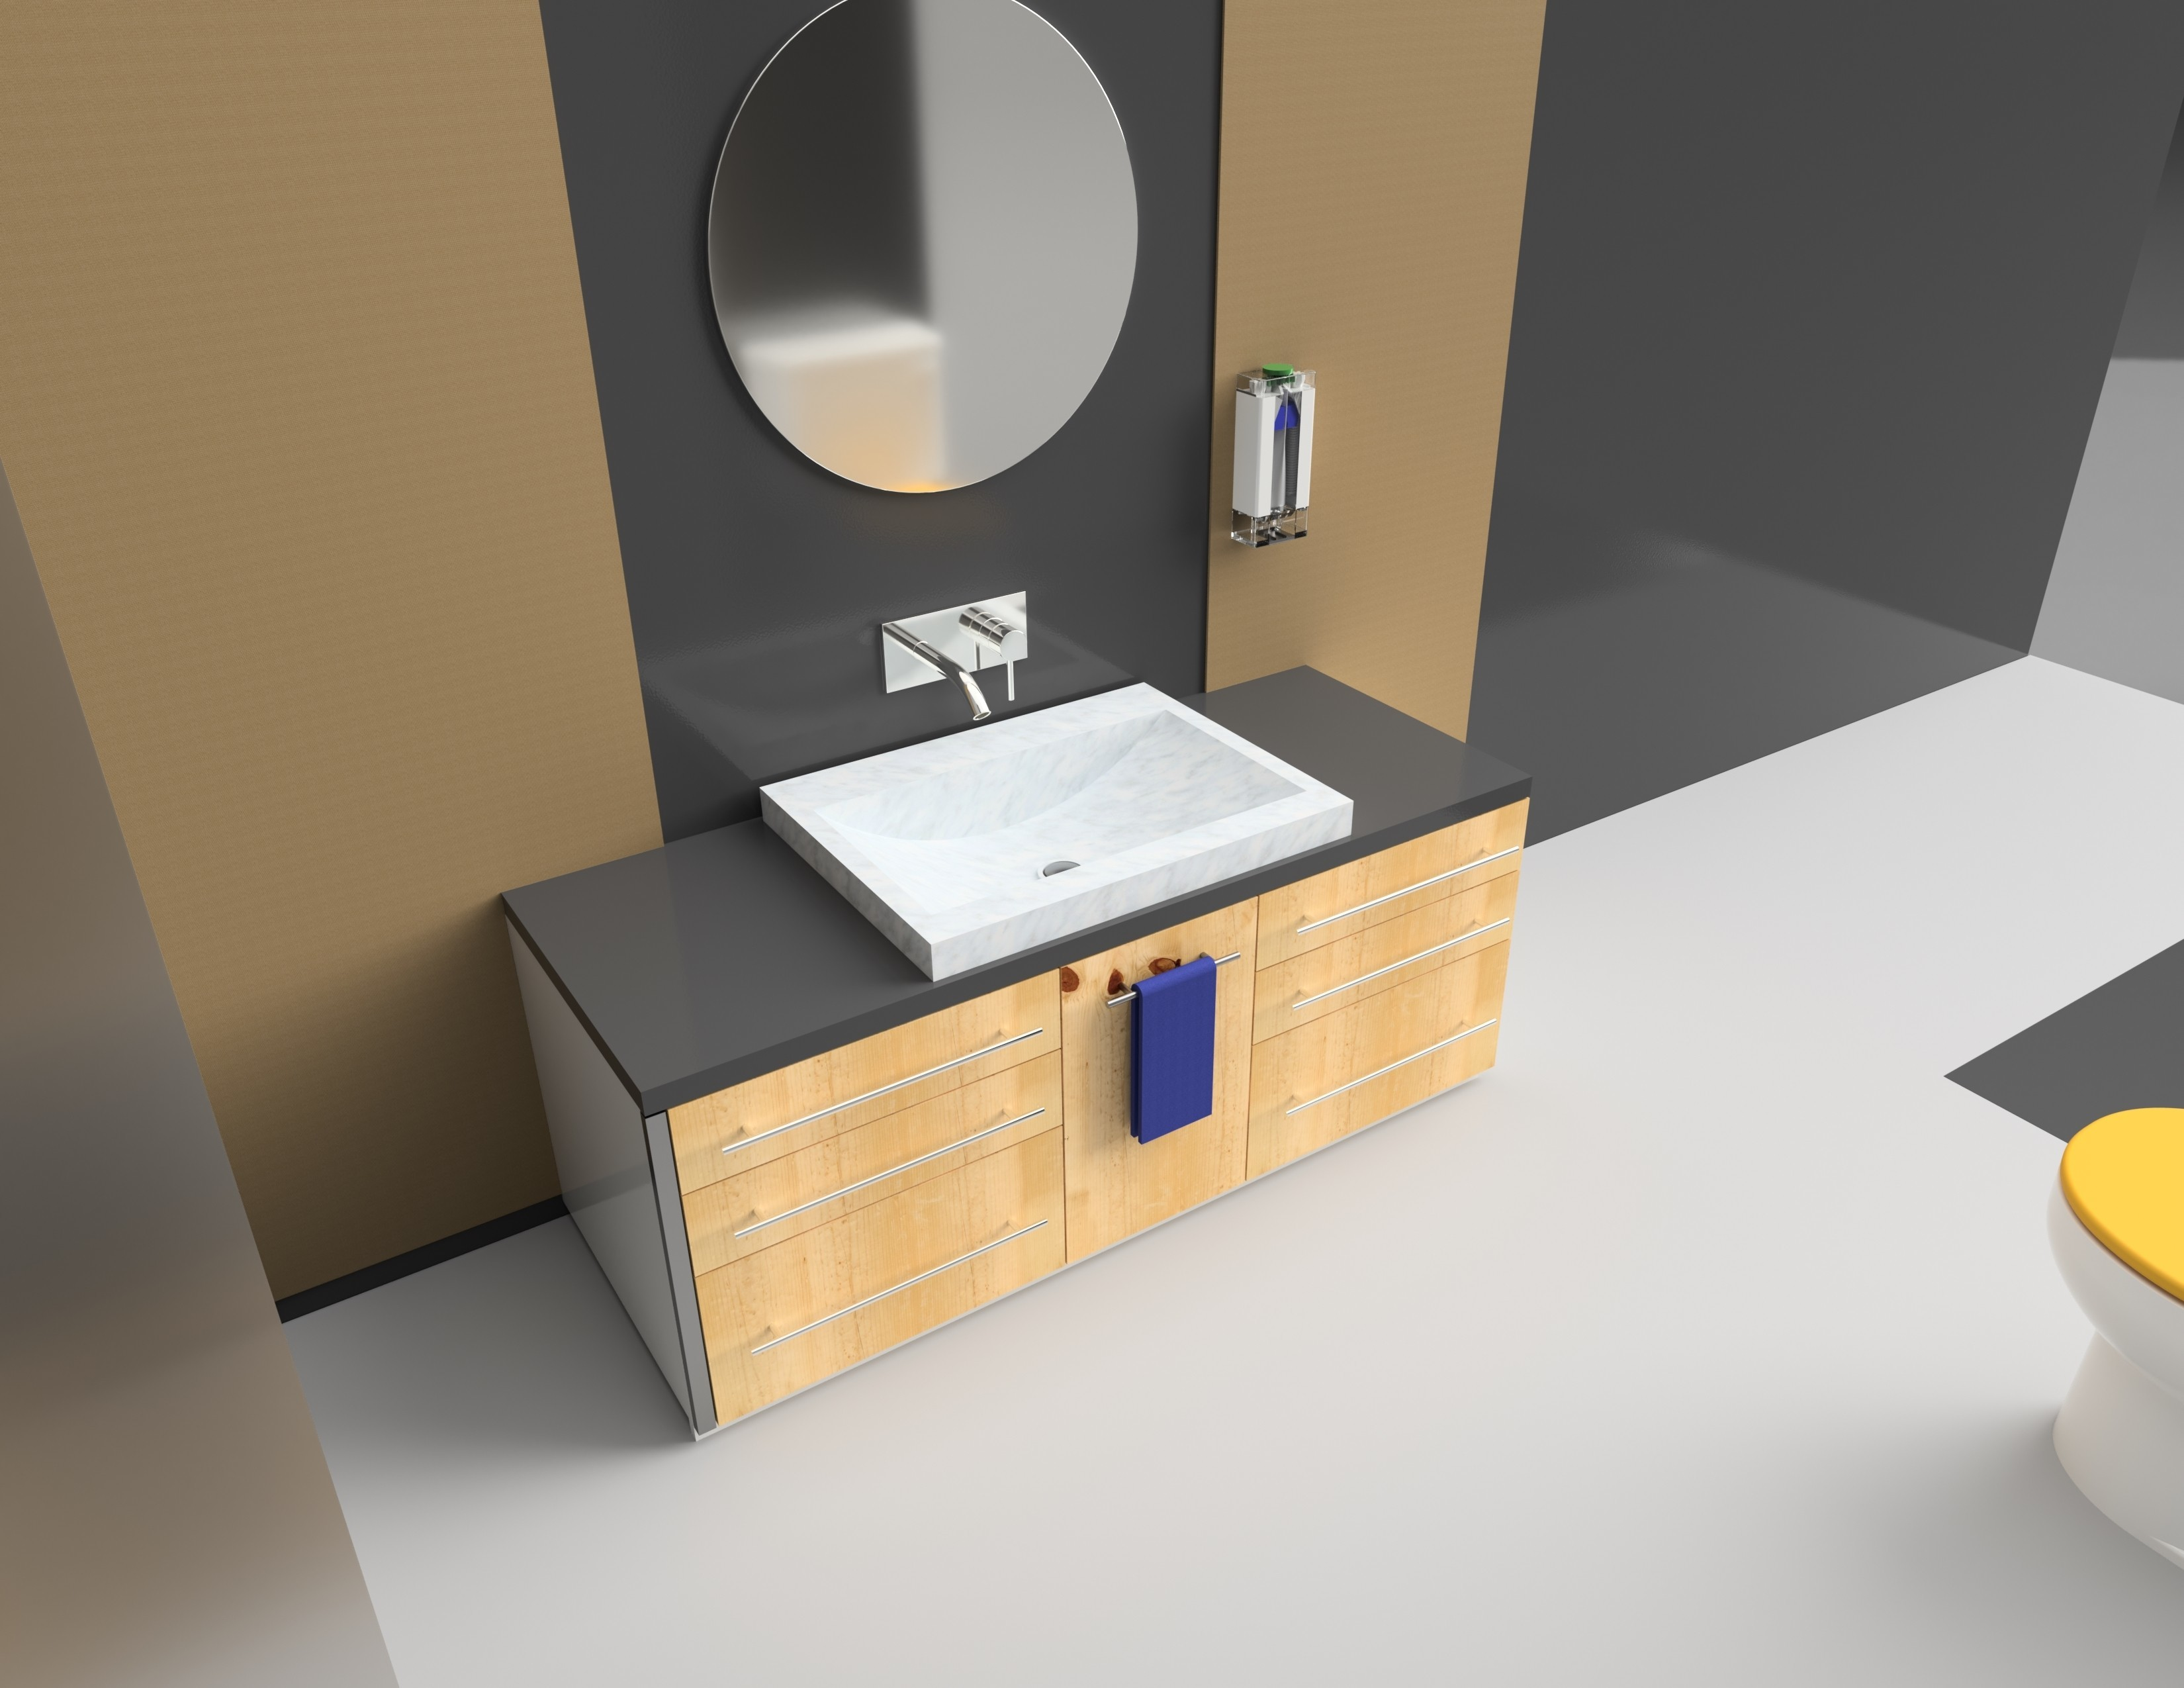 wc_asm_2017-Nov-28_06-21-08PM-000_CustomizedView18270021239_png.jpg Download free STL file Toothpaste Dispenser • 3D print model, Anthony_SA